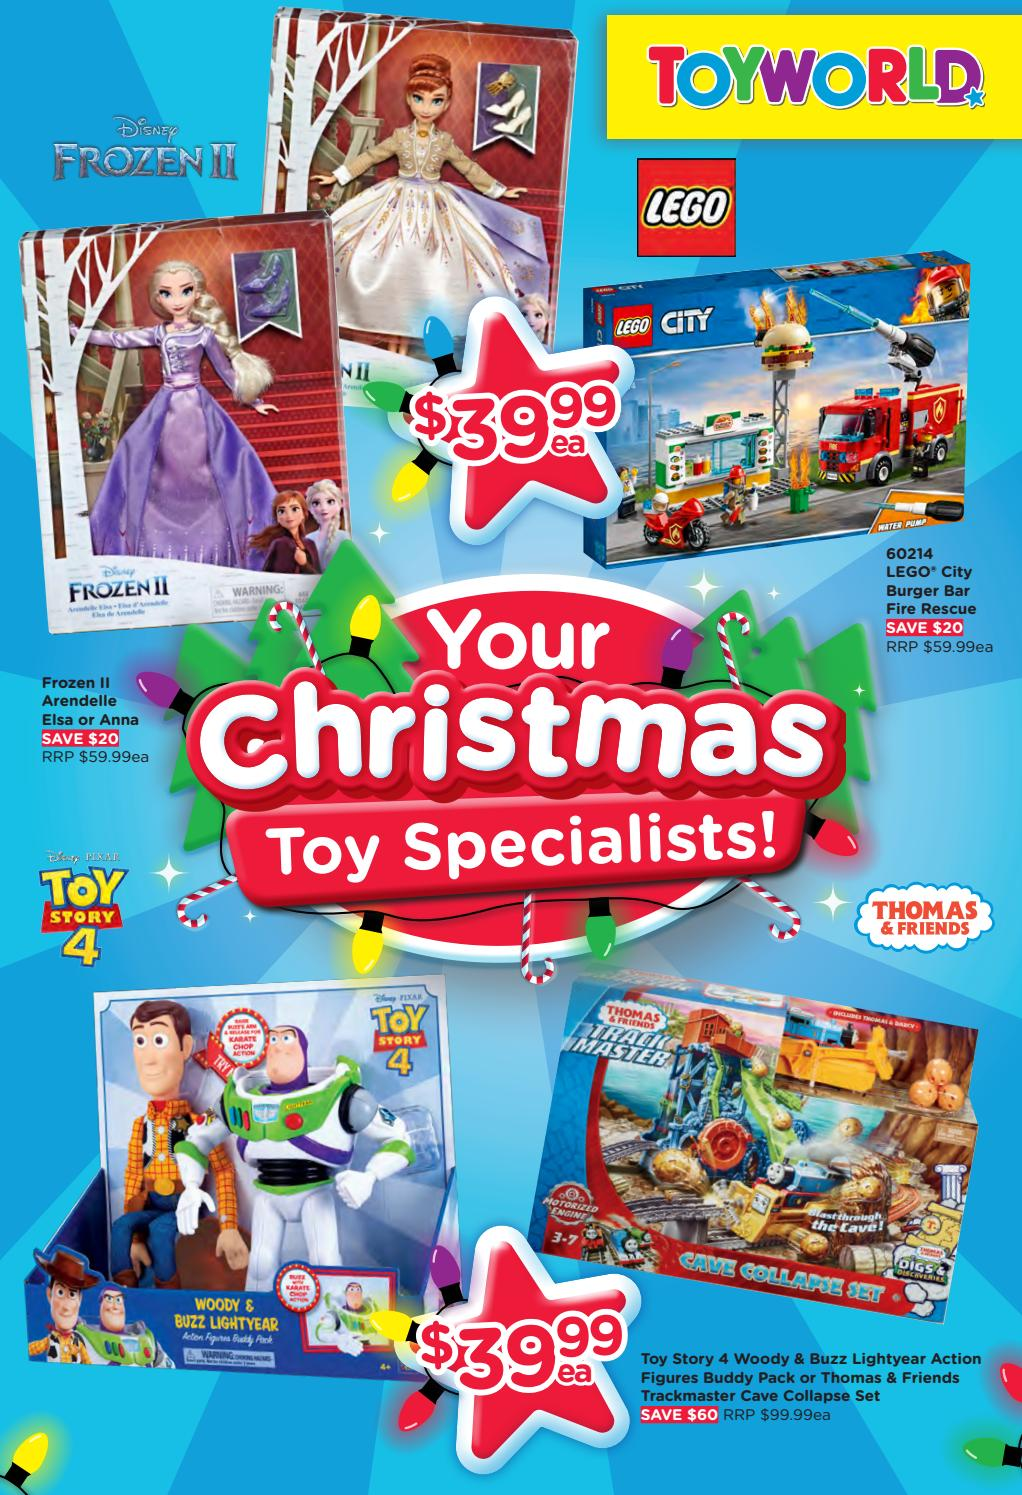 Toyworld Catalogue 4 December - 15 December 2019. Your Christmas Toy Specialists!